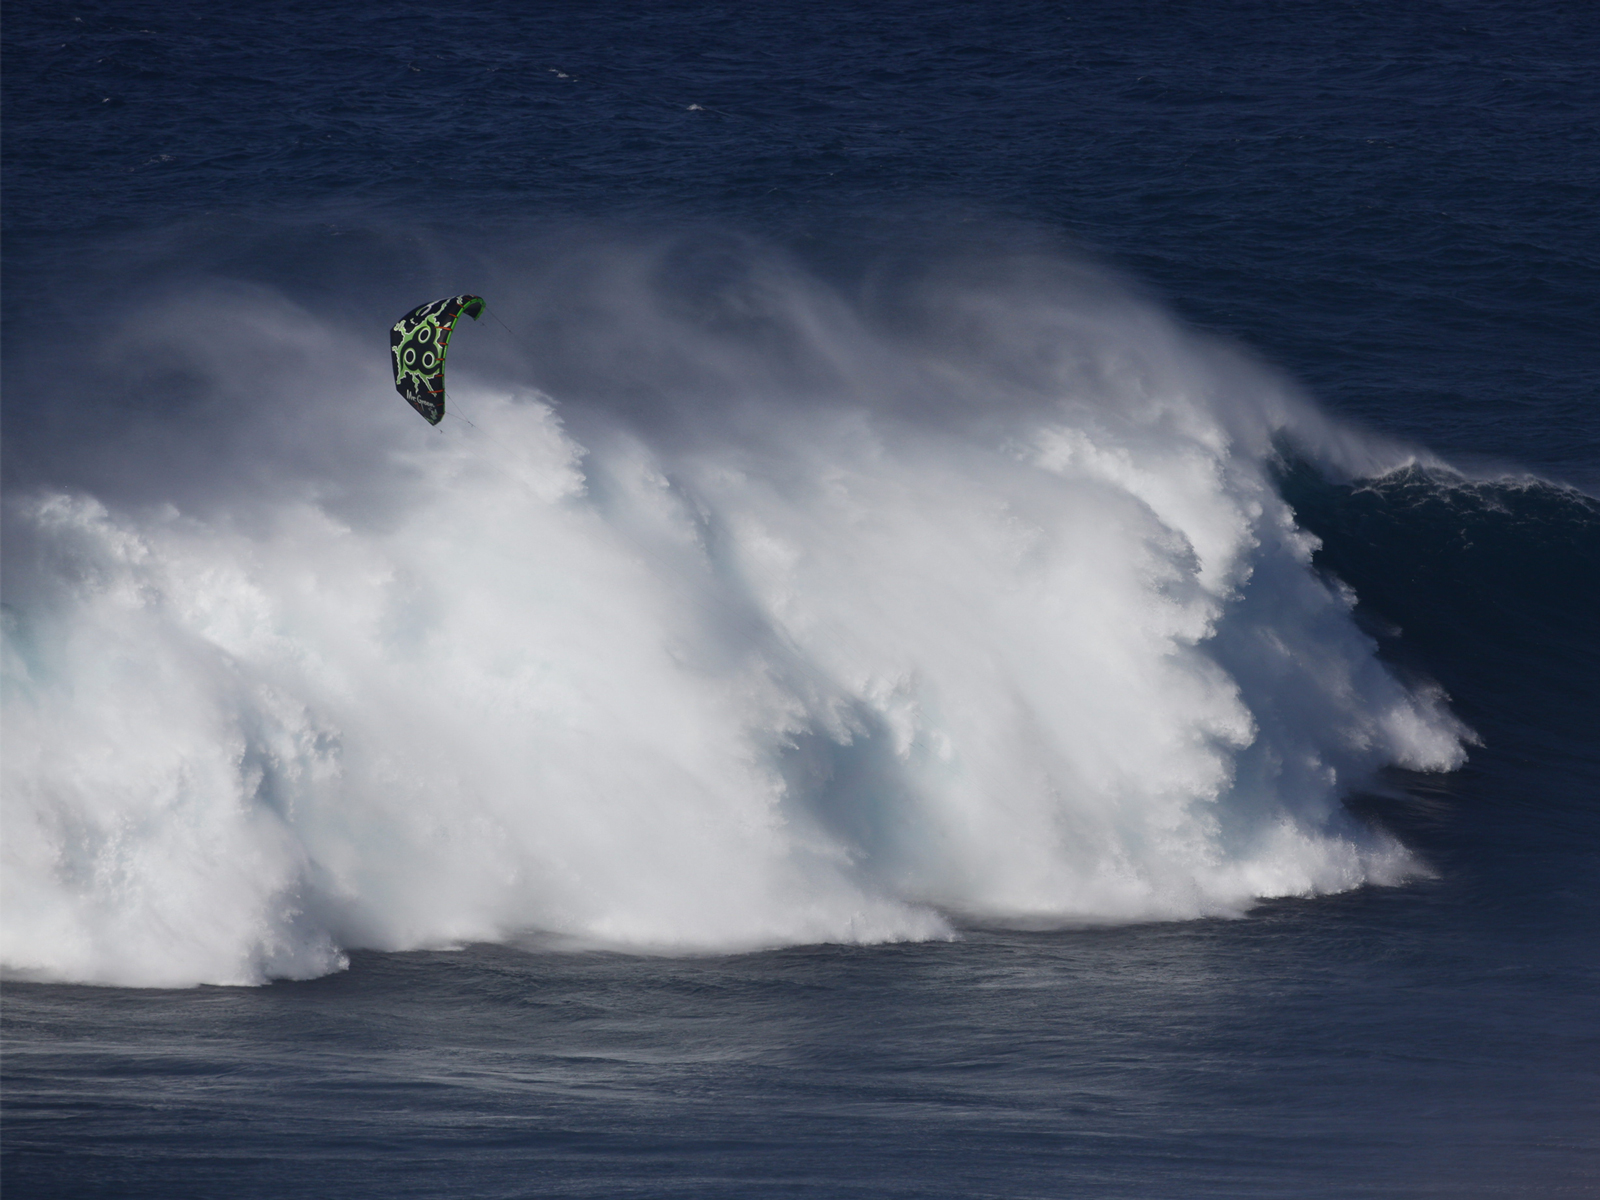 kitesurf wallpaper image - Niccolo Porcella in the grinder on a huge day at Jaws with his Wainman Hawaii Rabbit kite - in resolution: Standard 4:3 1600 X 1200